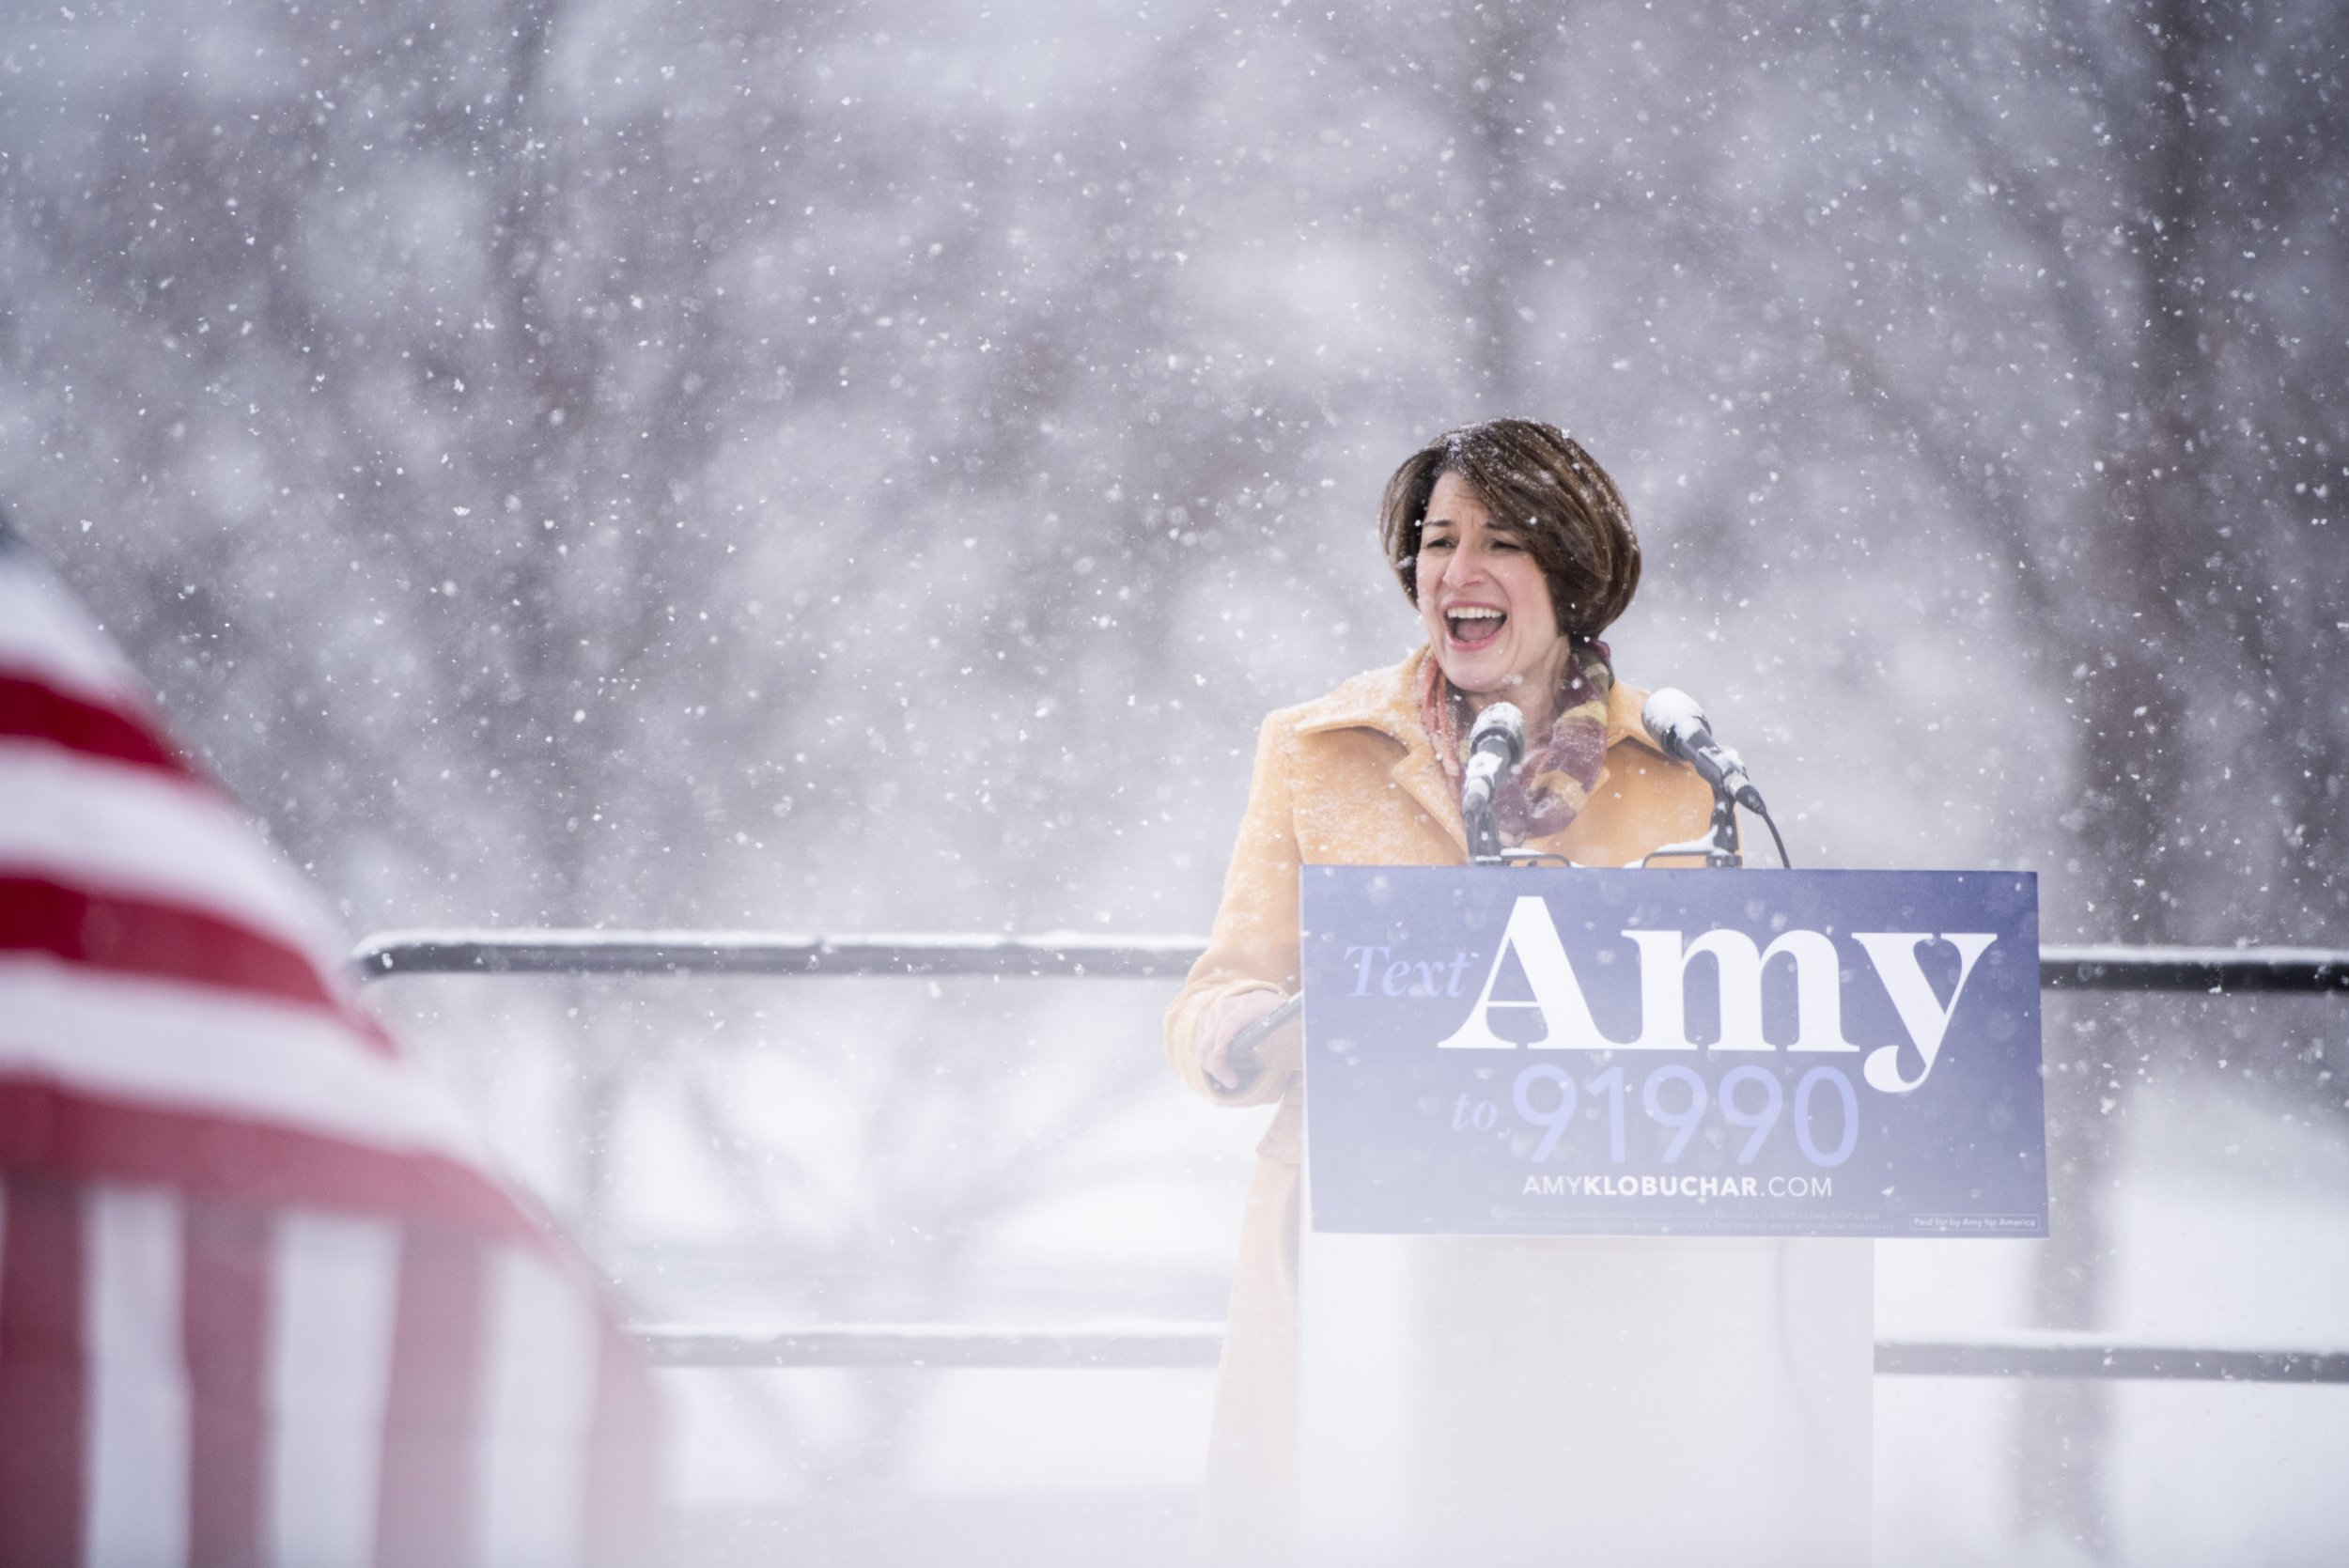 amy klobuchar snow donald trump tweet